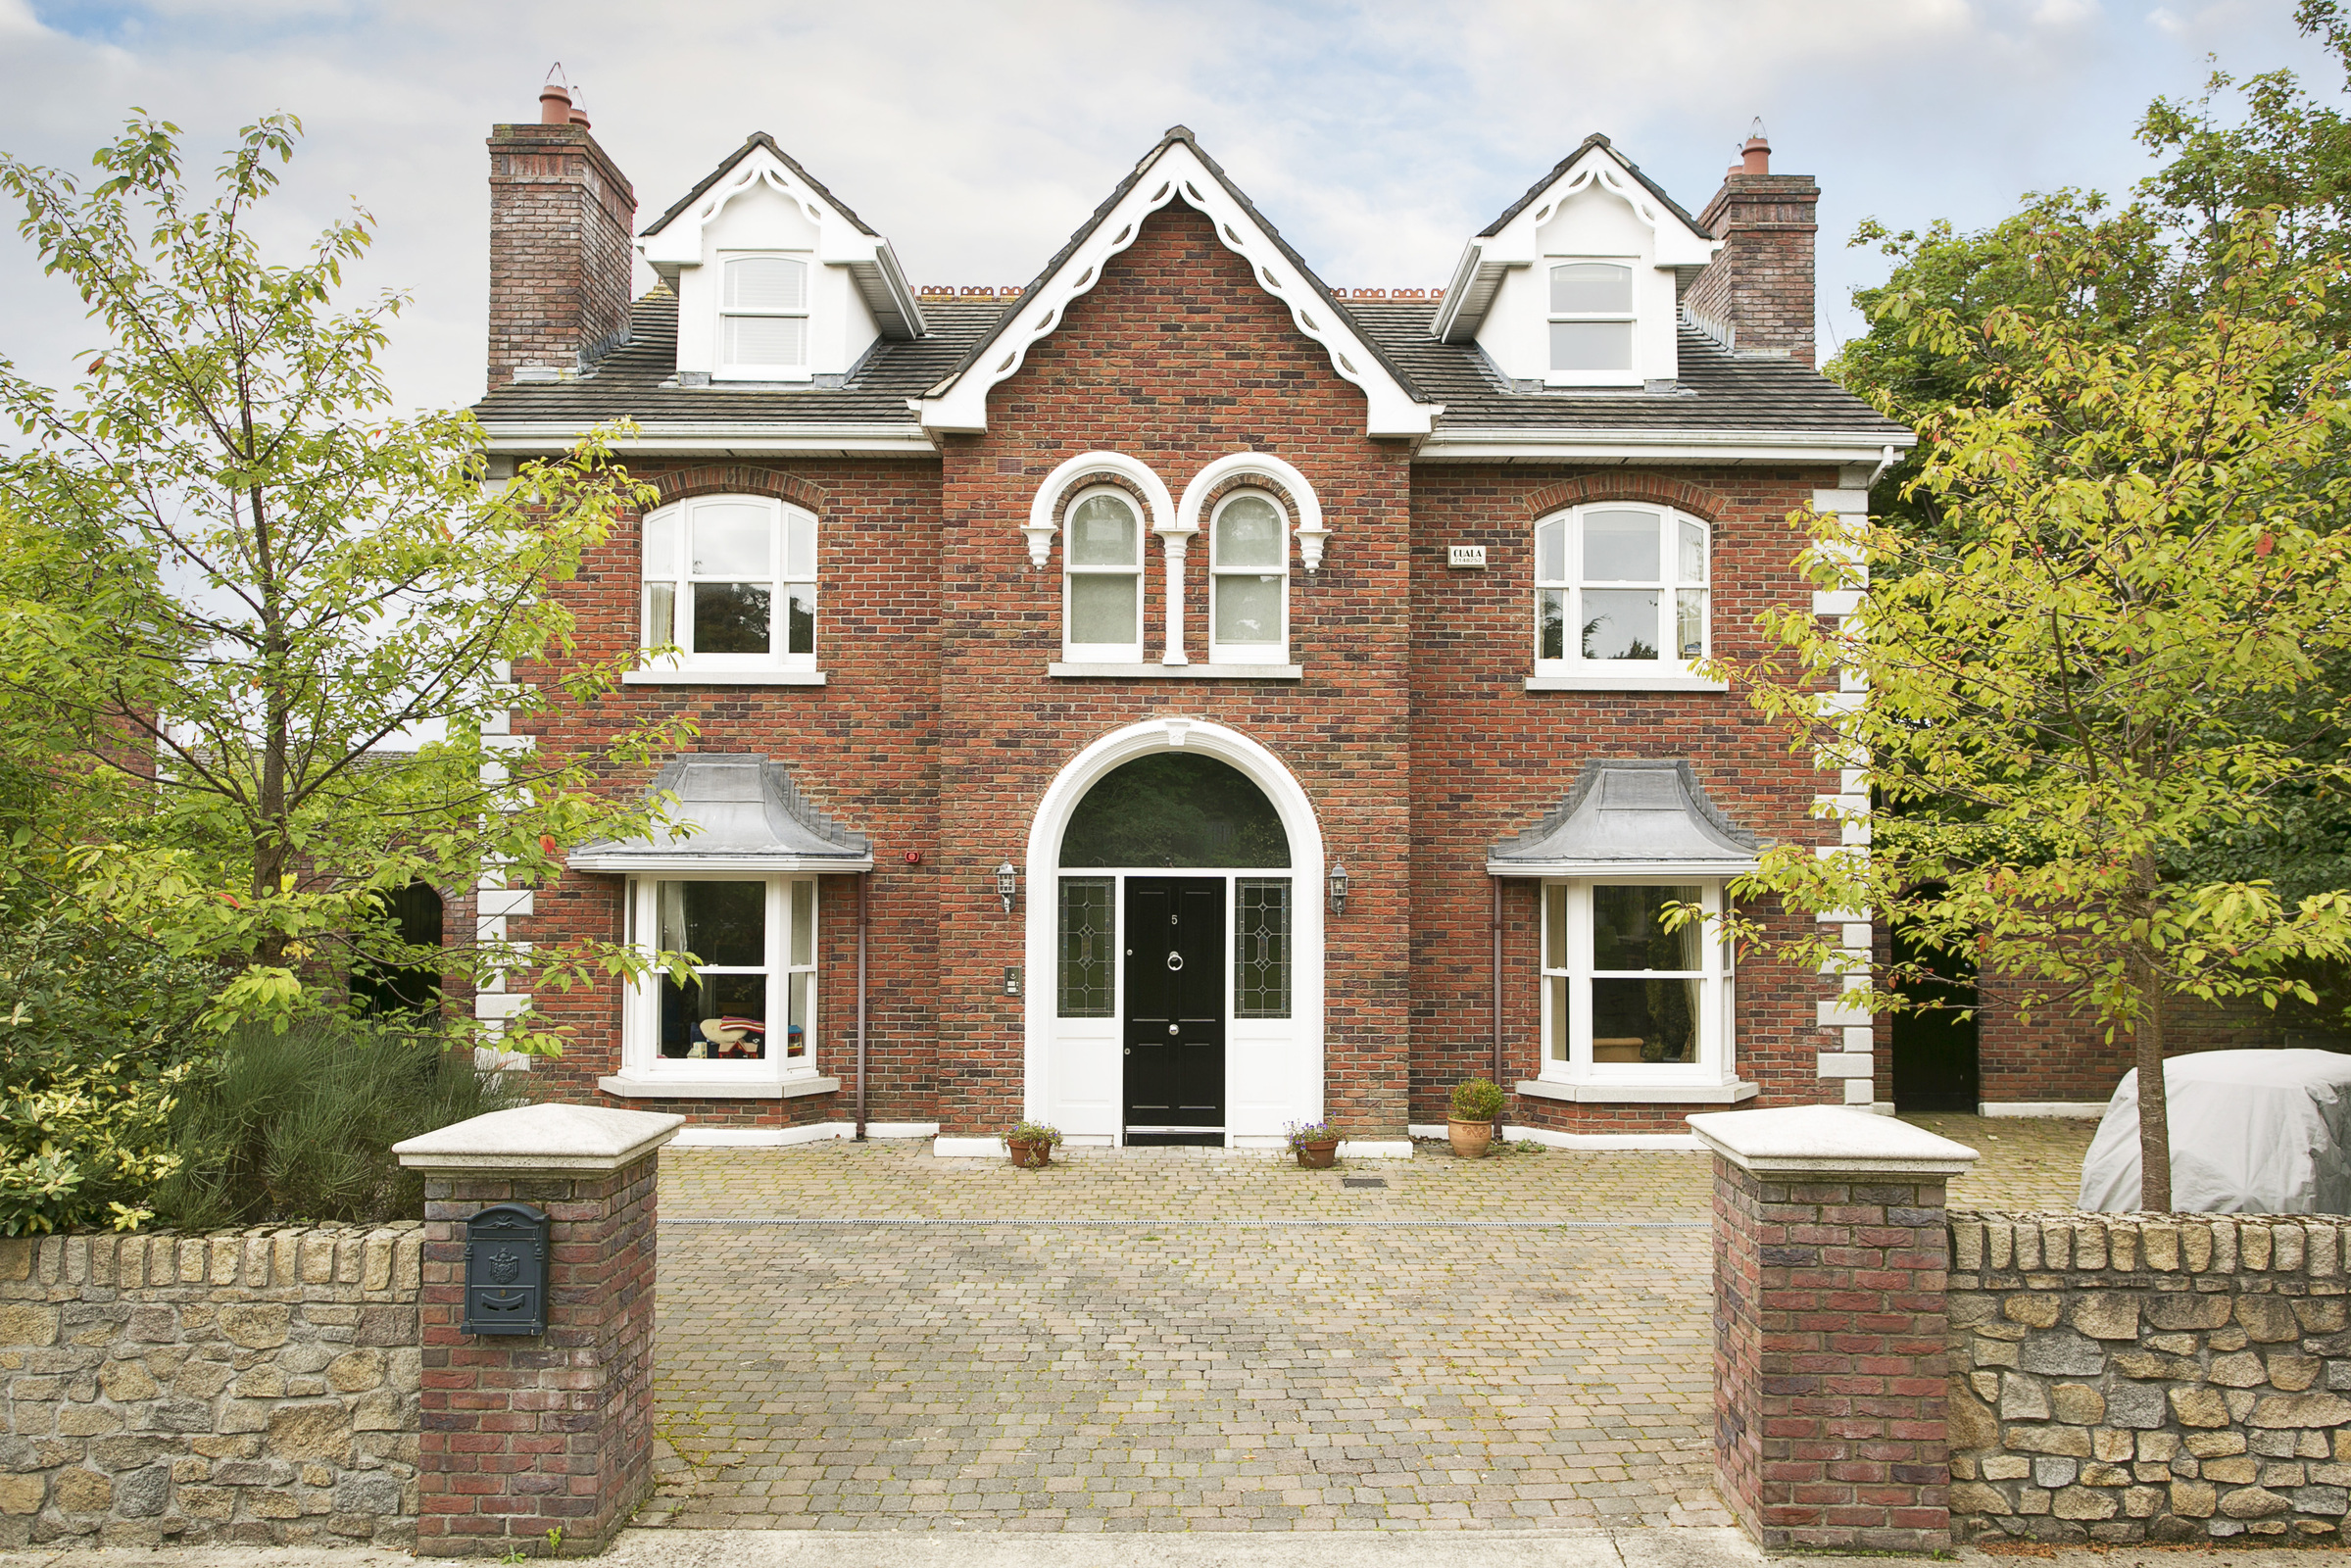 5 Saint Matthias Wood, Church Road, Killiney, Co. Dublin